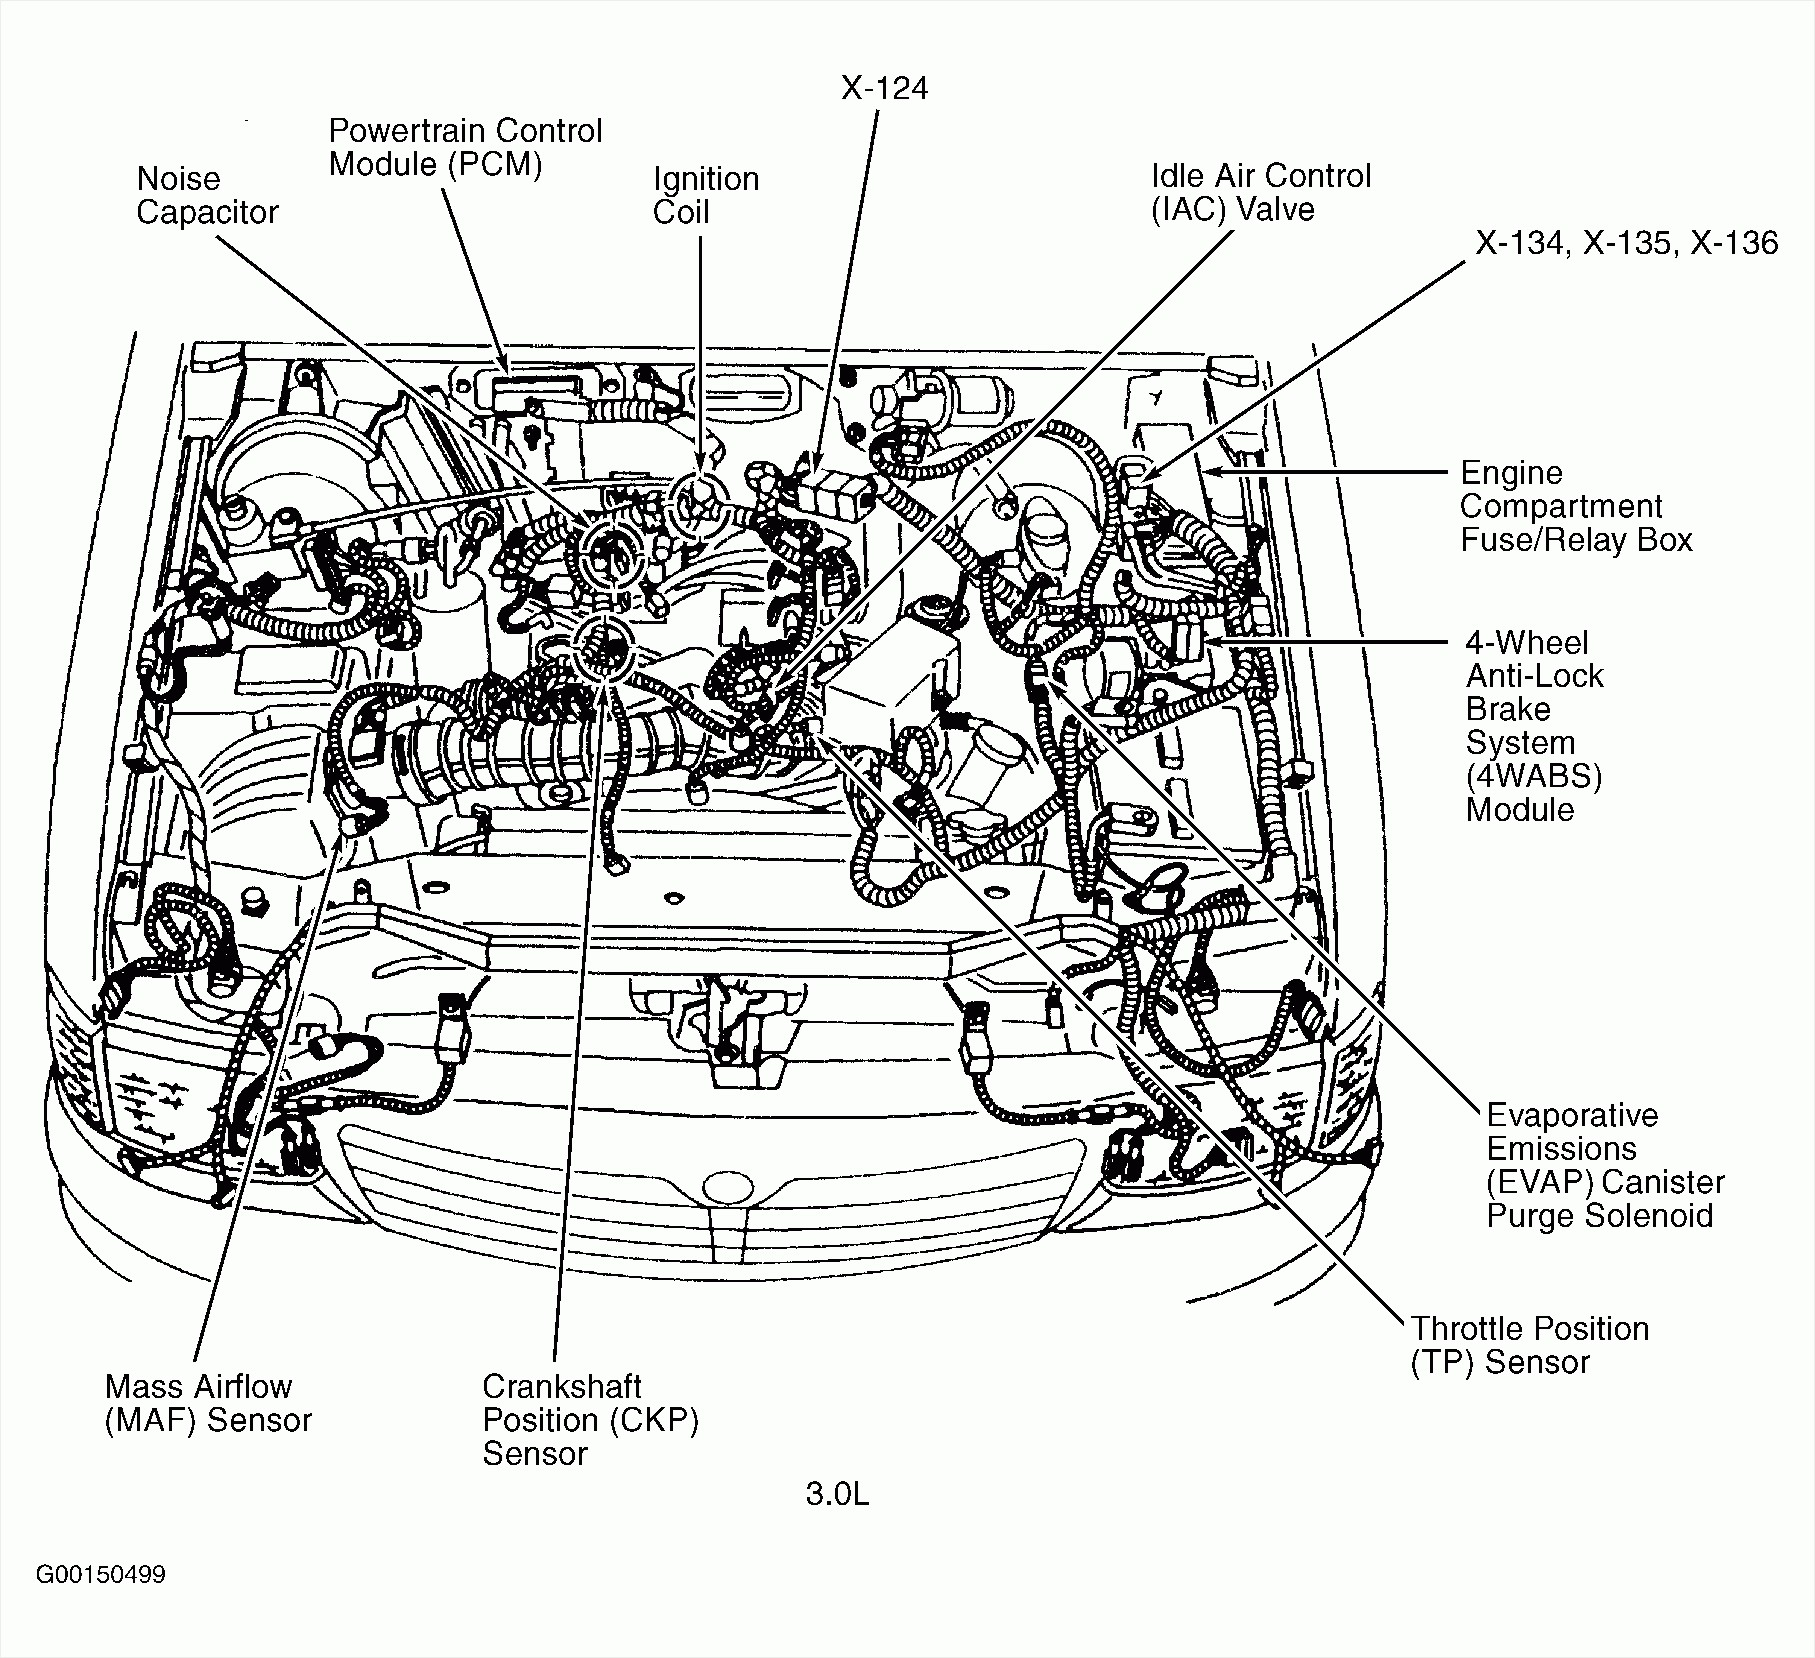 hight resolution of 2008 toyota 4runner engine diagram wiring diagrams konsult diagram 2002 toyota camry pcv valve location 1999 toyota sienna fuse